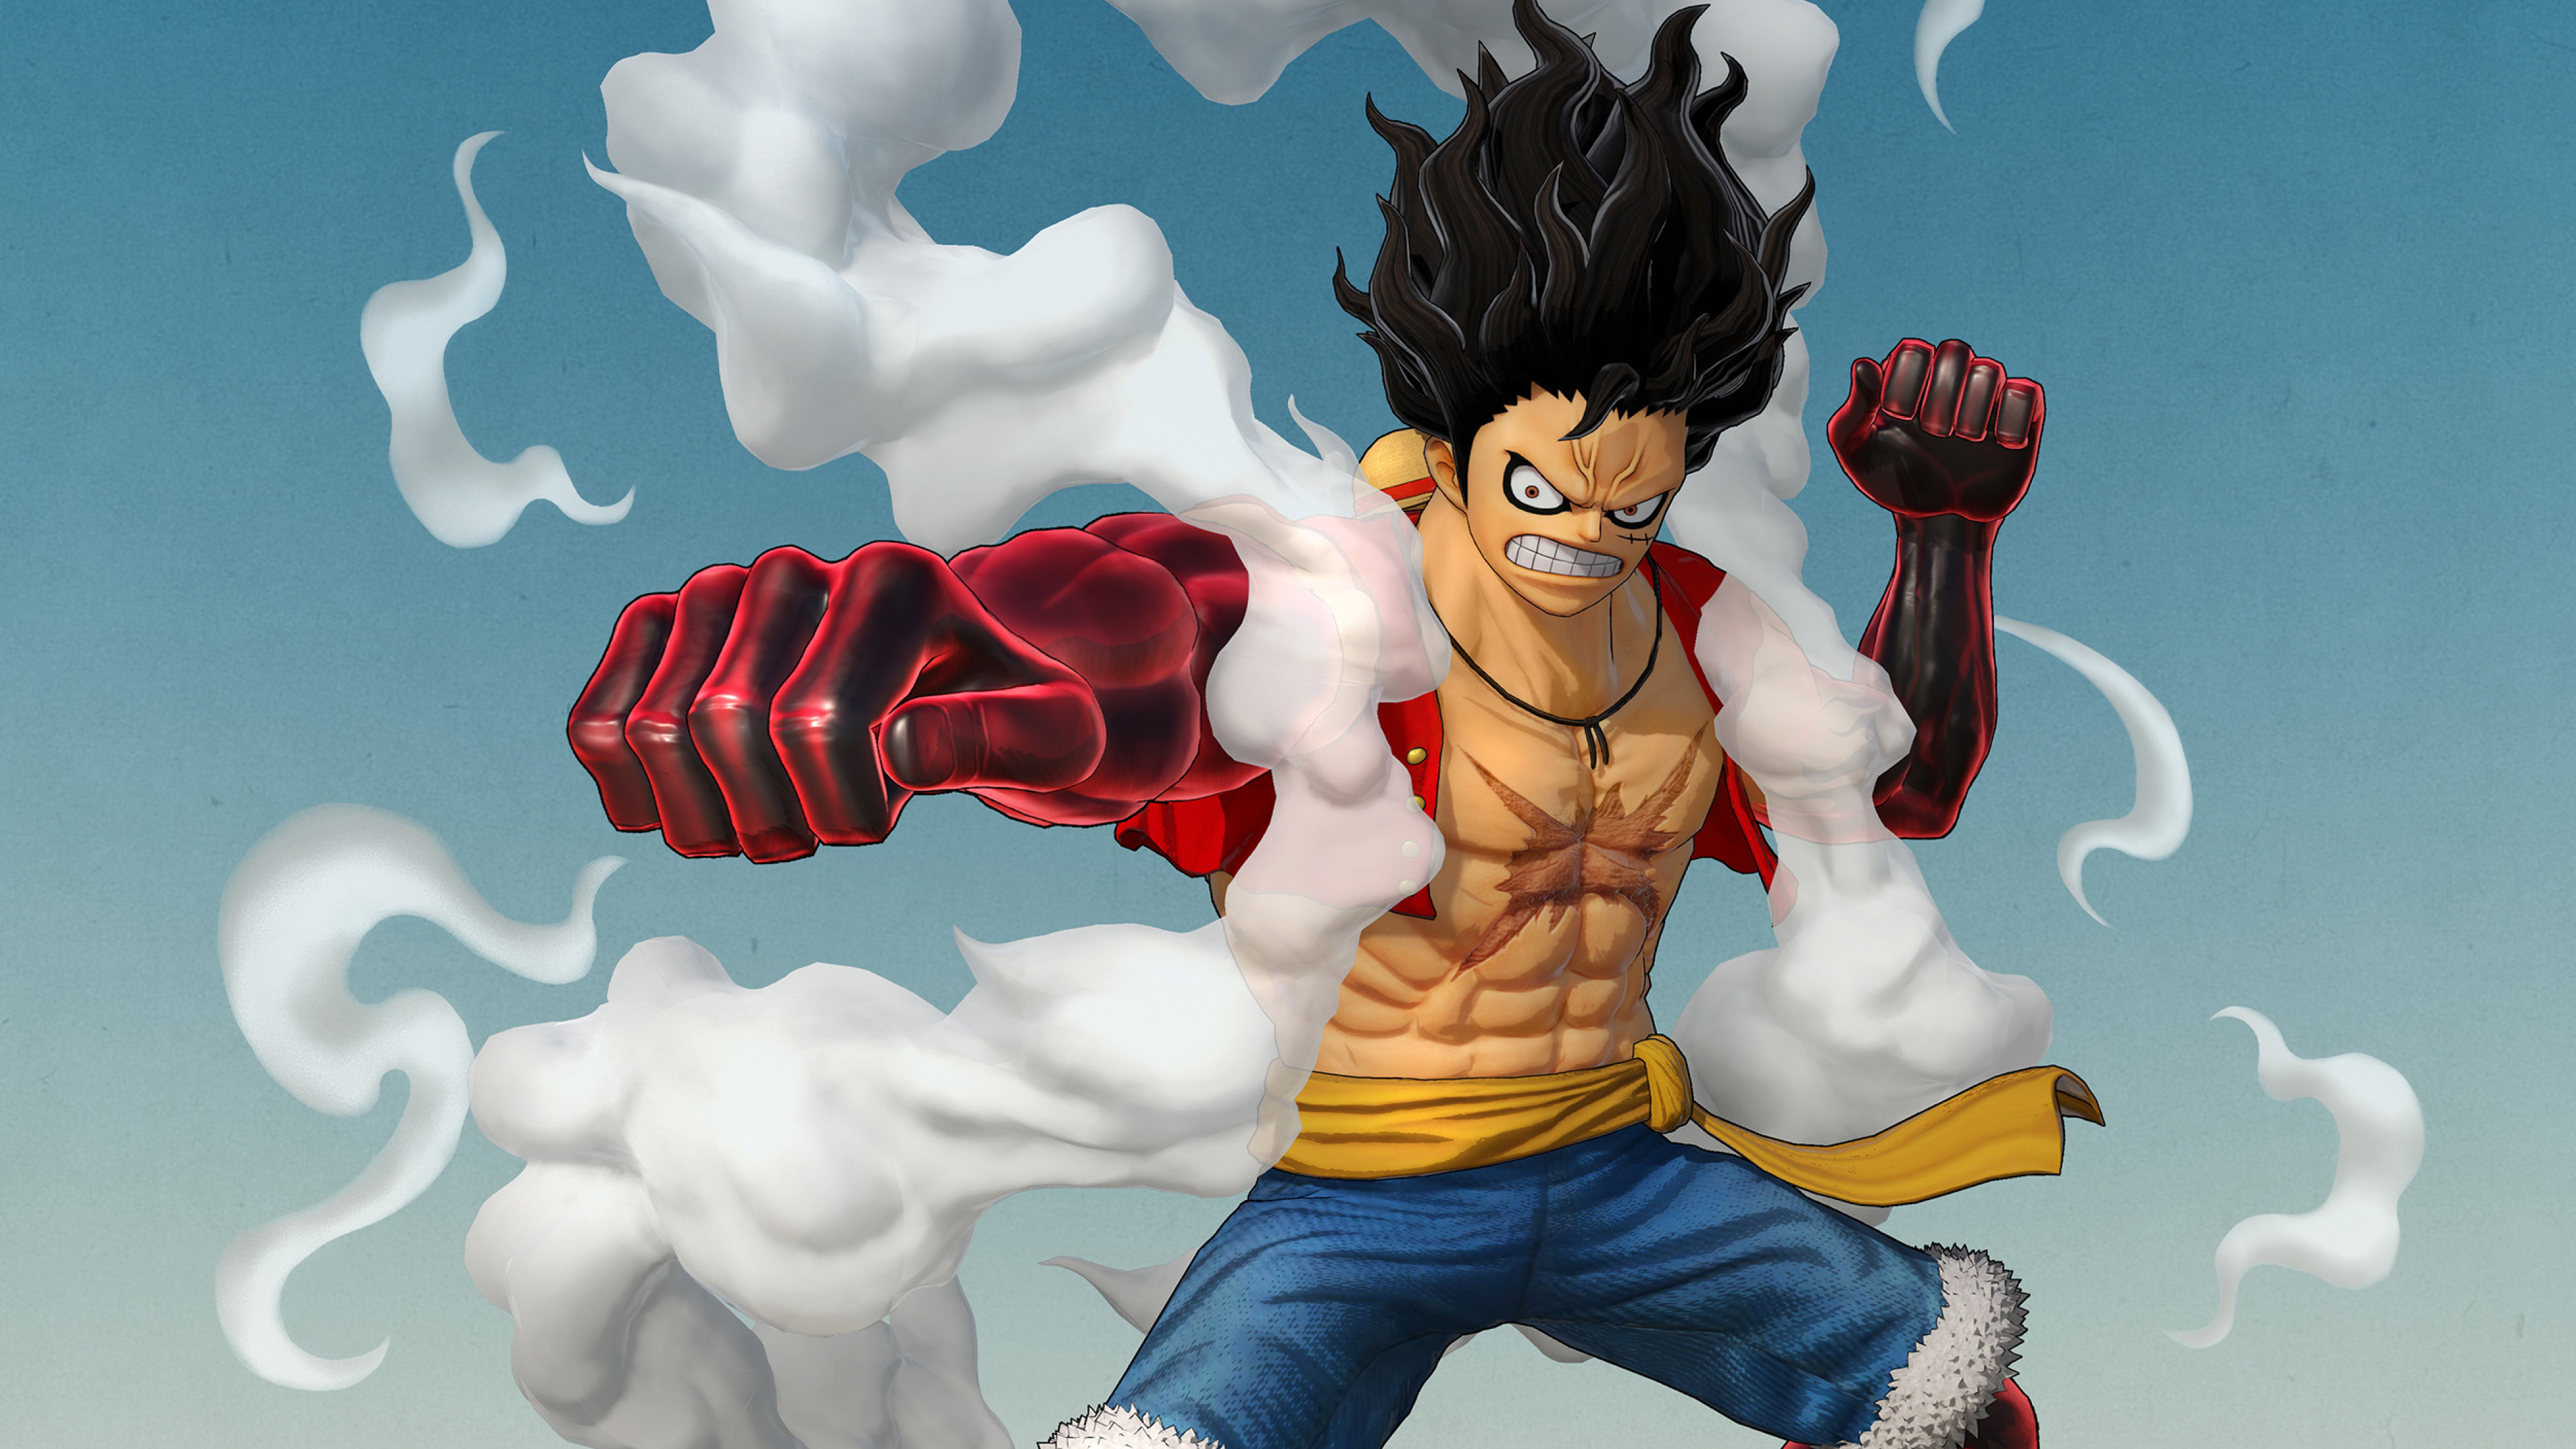 3840x2160 Luffy Snakeman One Piece Game 4k Wallpaper Hd Games 4k Wallpapers Images Photos And Background